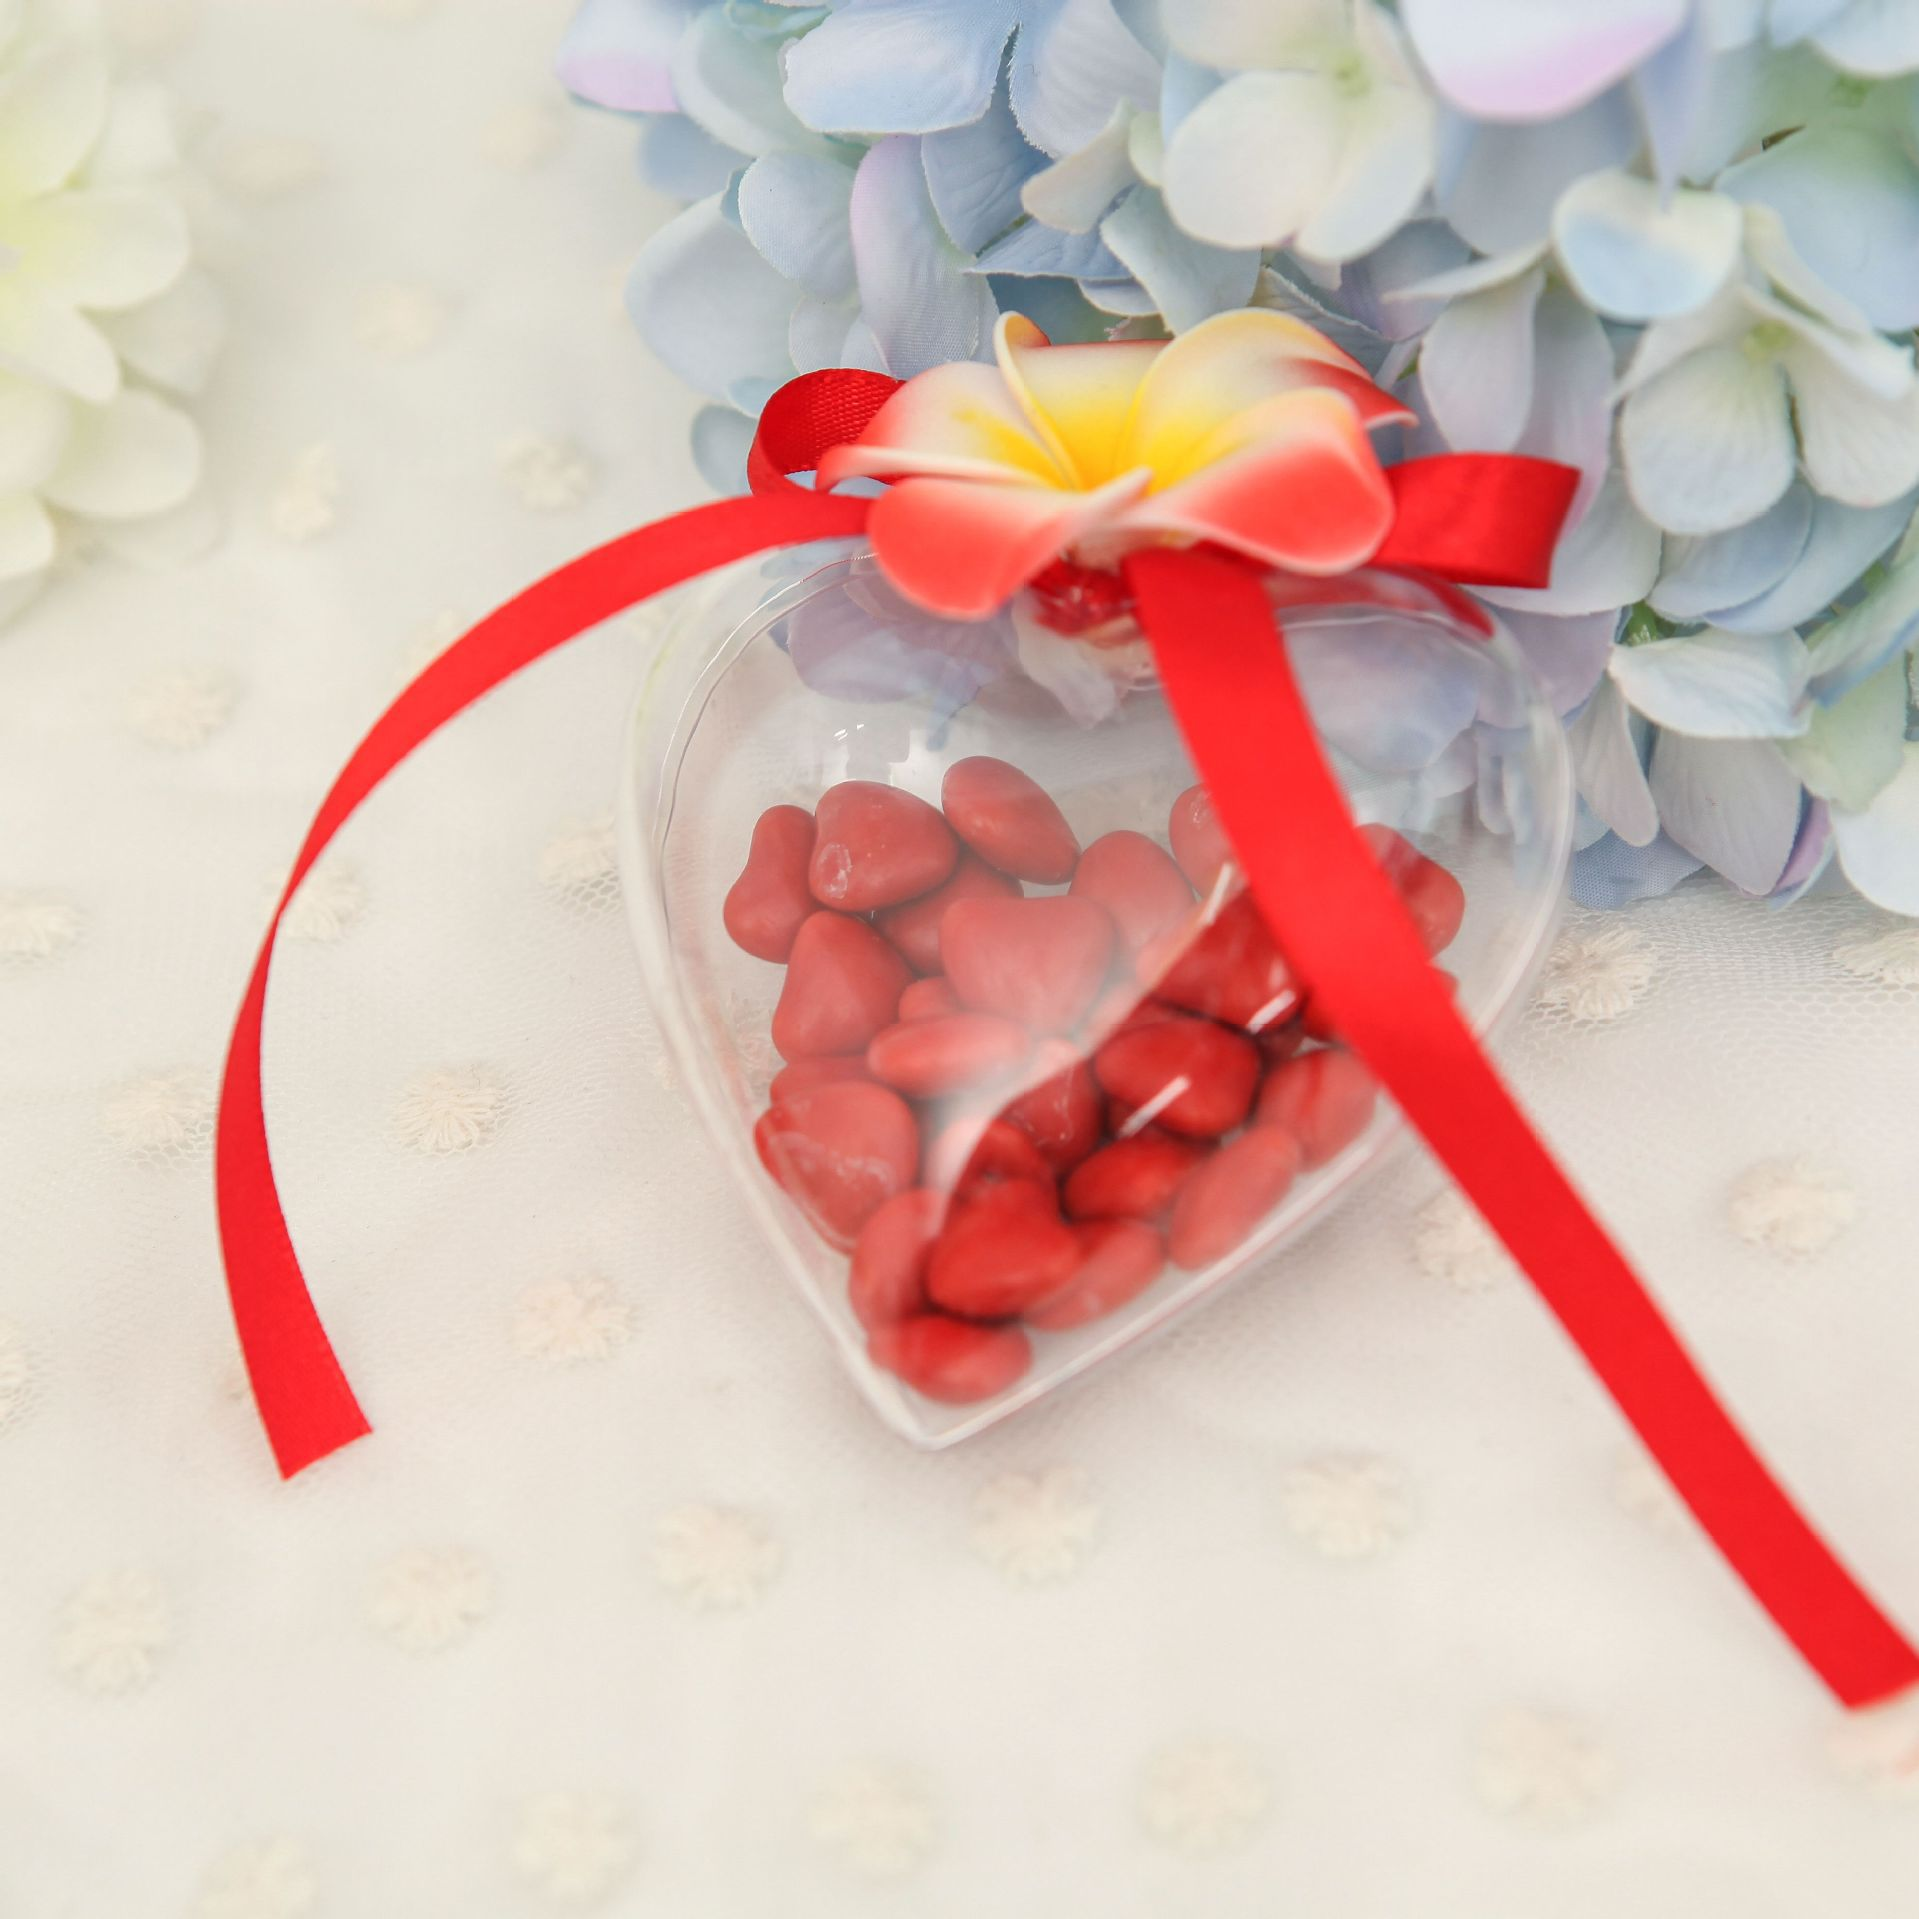 Clear plastic ornaments - 5pcs Plastic Clear Hanging Ball Bauble Candy Ornament Xmas Tree Decor Clear Plastic Heart Shape Ball